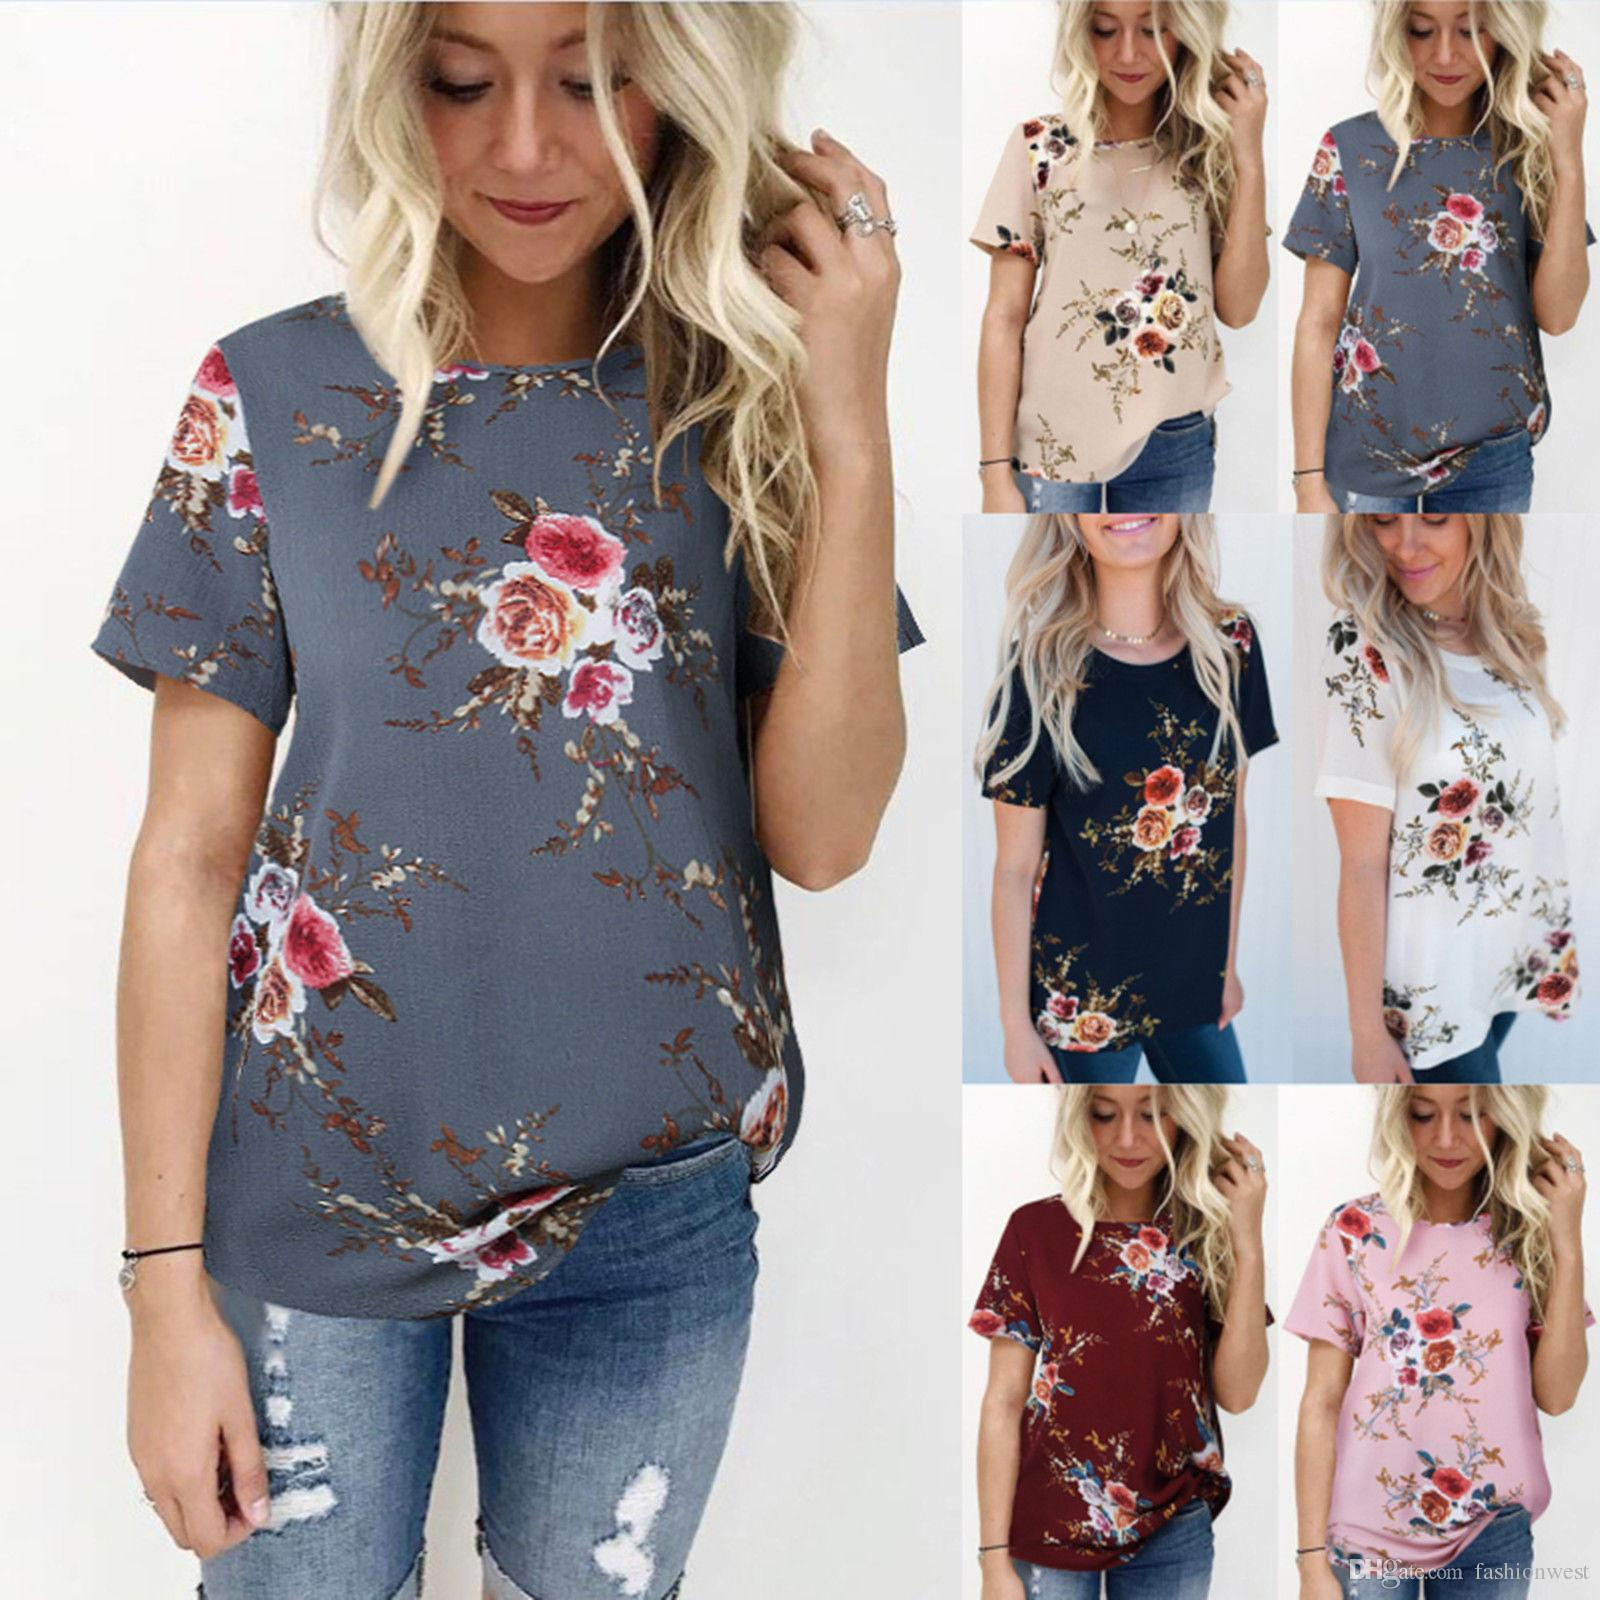 47d52ca72b13f 2019 Summer Womens Floral Tops Blouse Ladies Short Sleeve T Shirt Plus Size  6 20 Awesome Shirt Designs Funny Slogan T Shirts From Zhuwofacai